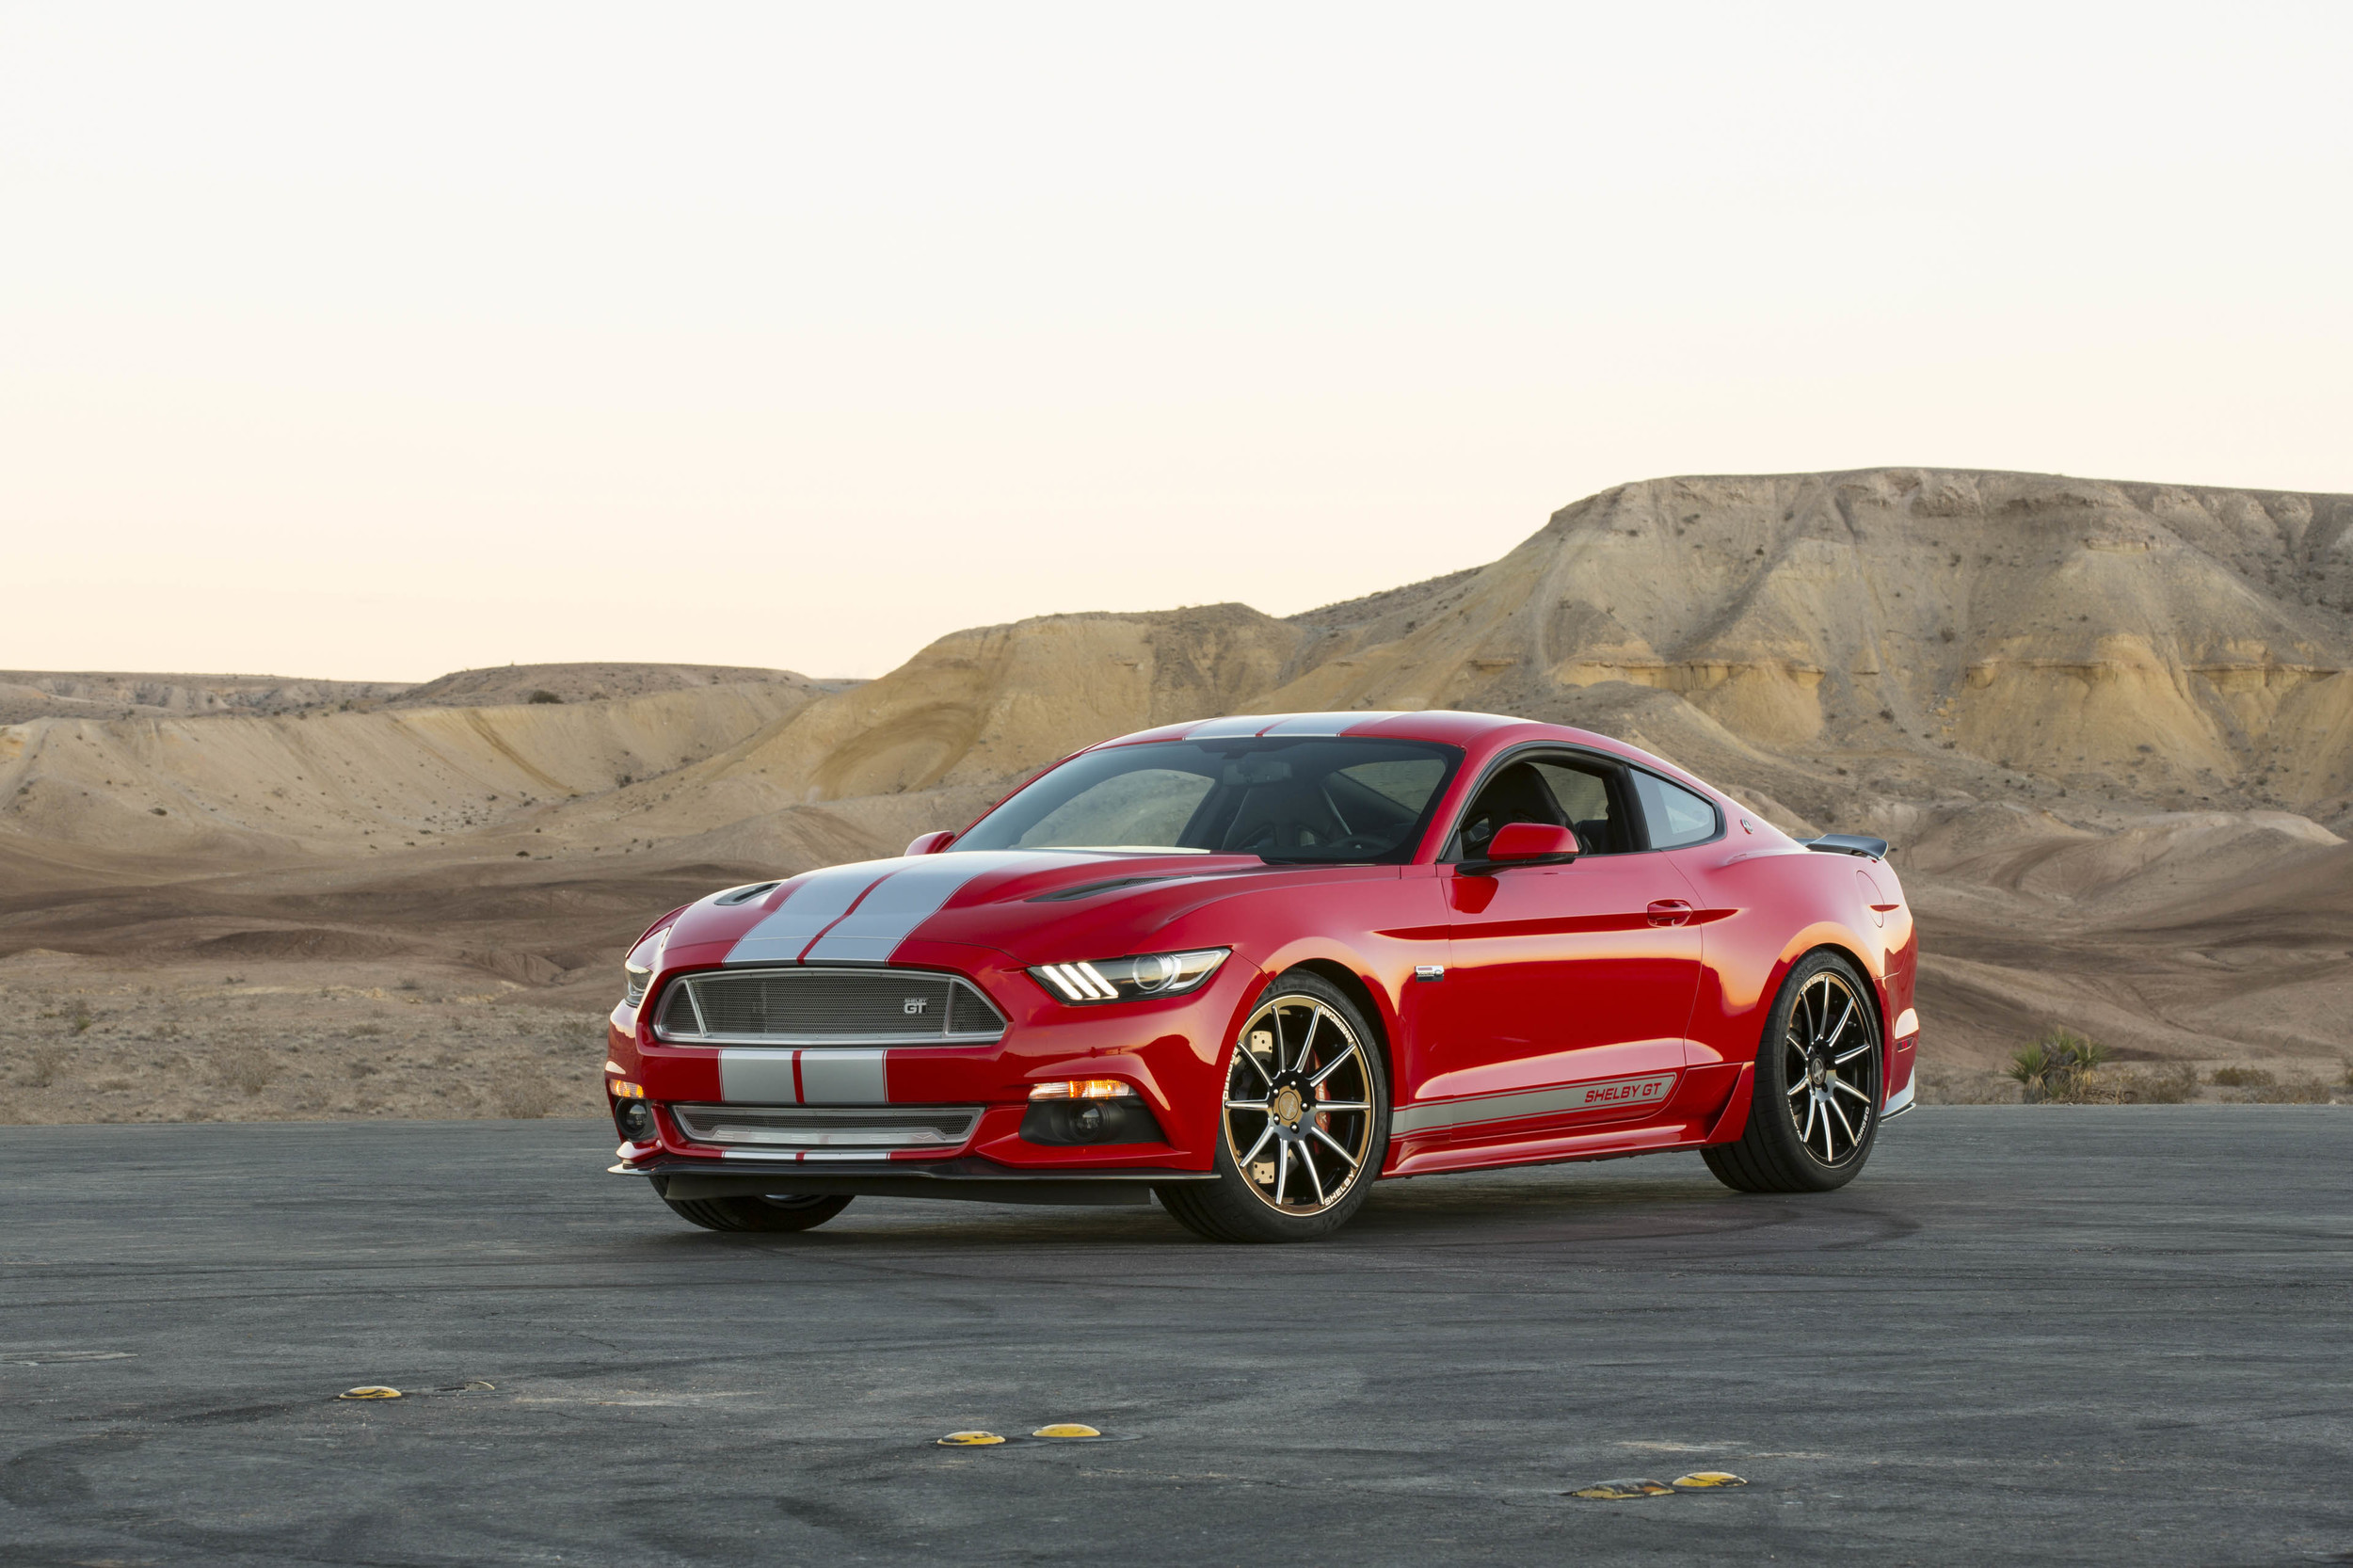 Ford Mustang 2015 Gt Ford Mustang Shelby GT 2015 (23/41)